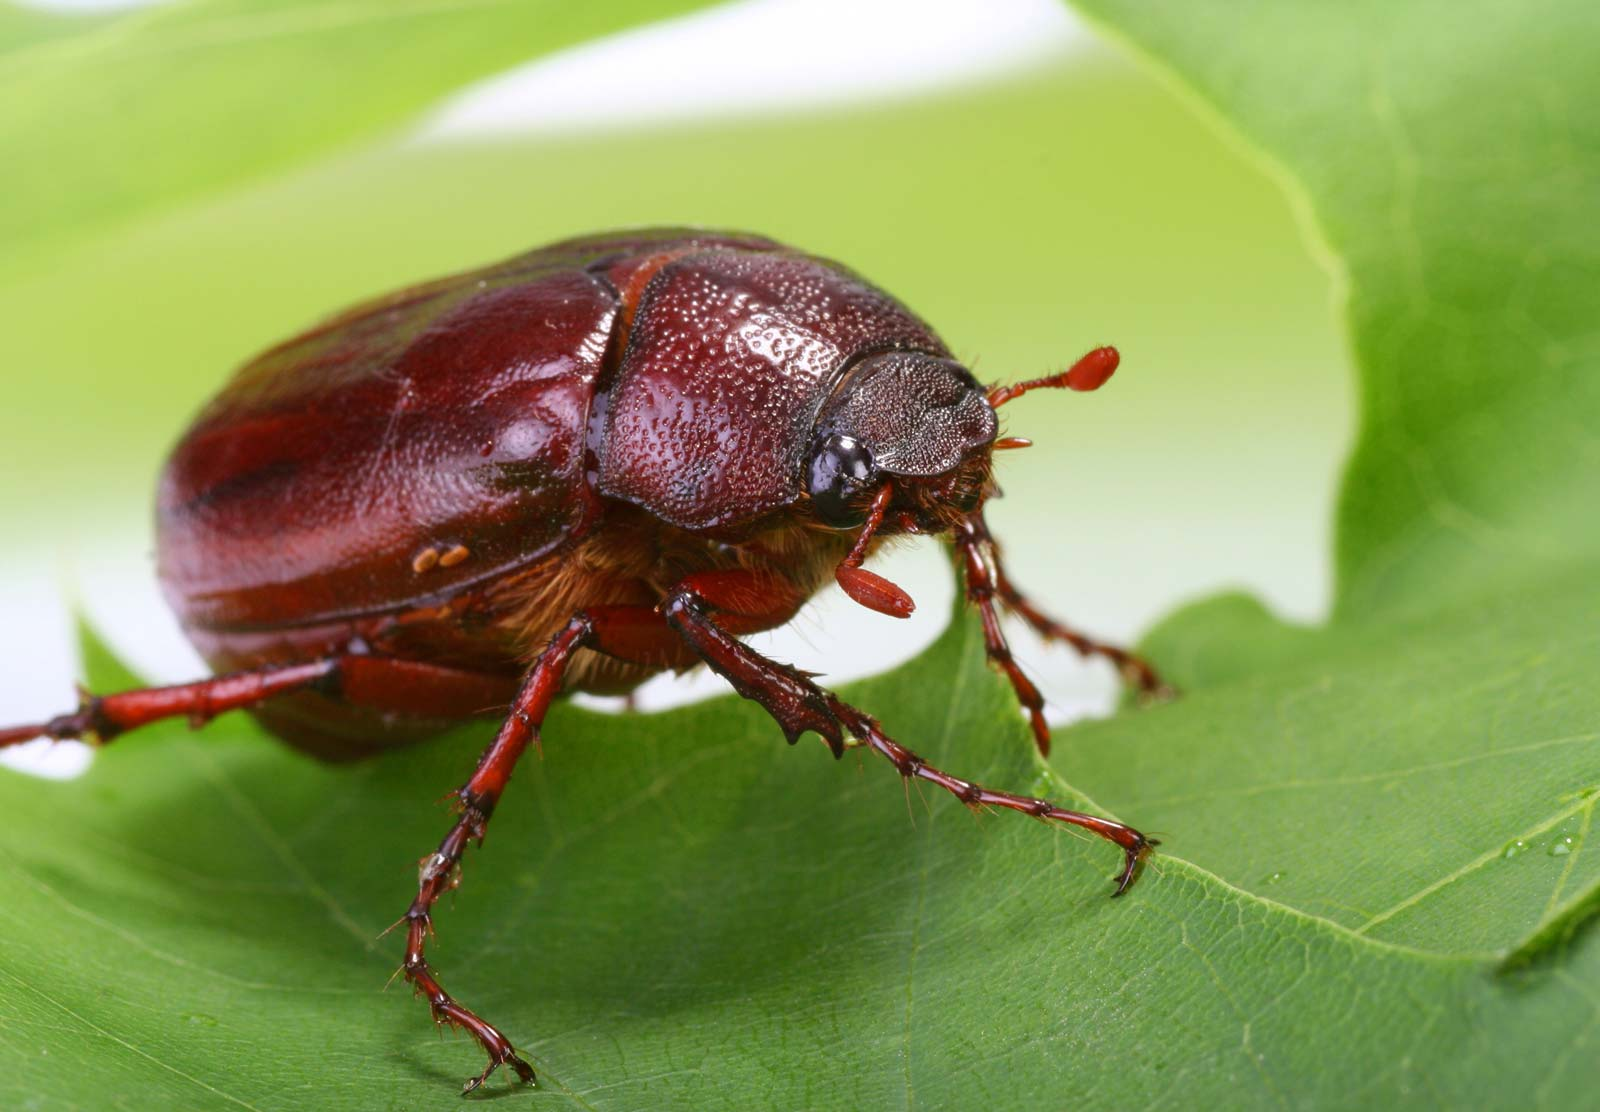 When Do June Bugs Go Away 2021 - Image By britannica